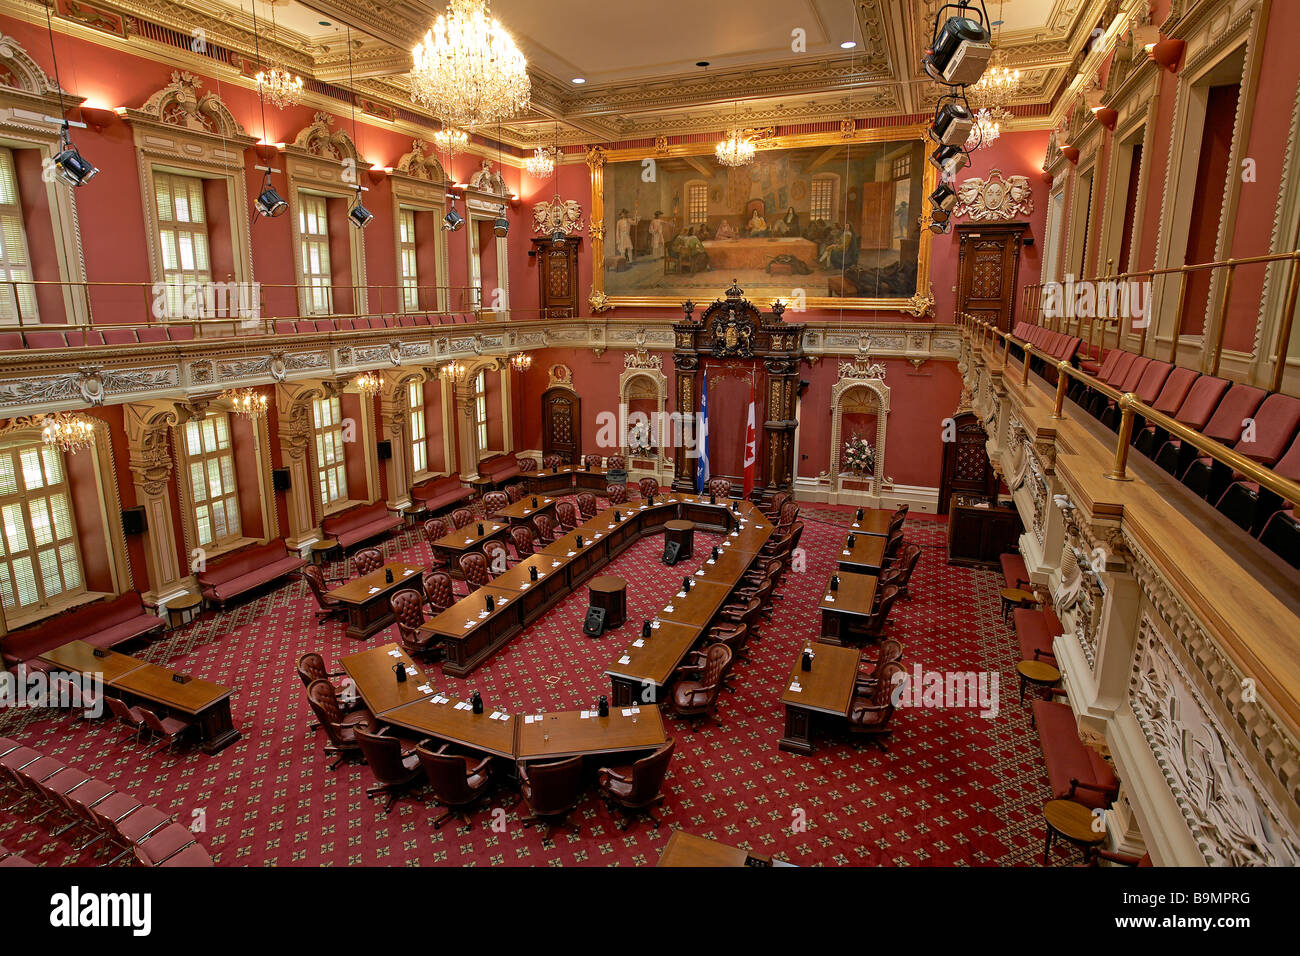 Canada Québec Province De Québec Le Parlement Siège De L Assemblée Nationale Salon Rouge Photo Stock Alamy